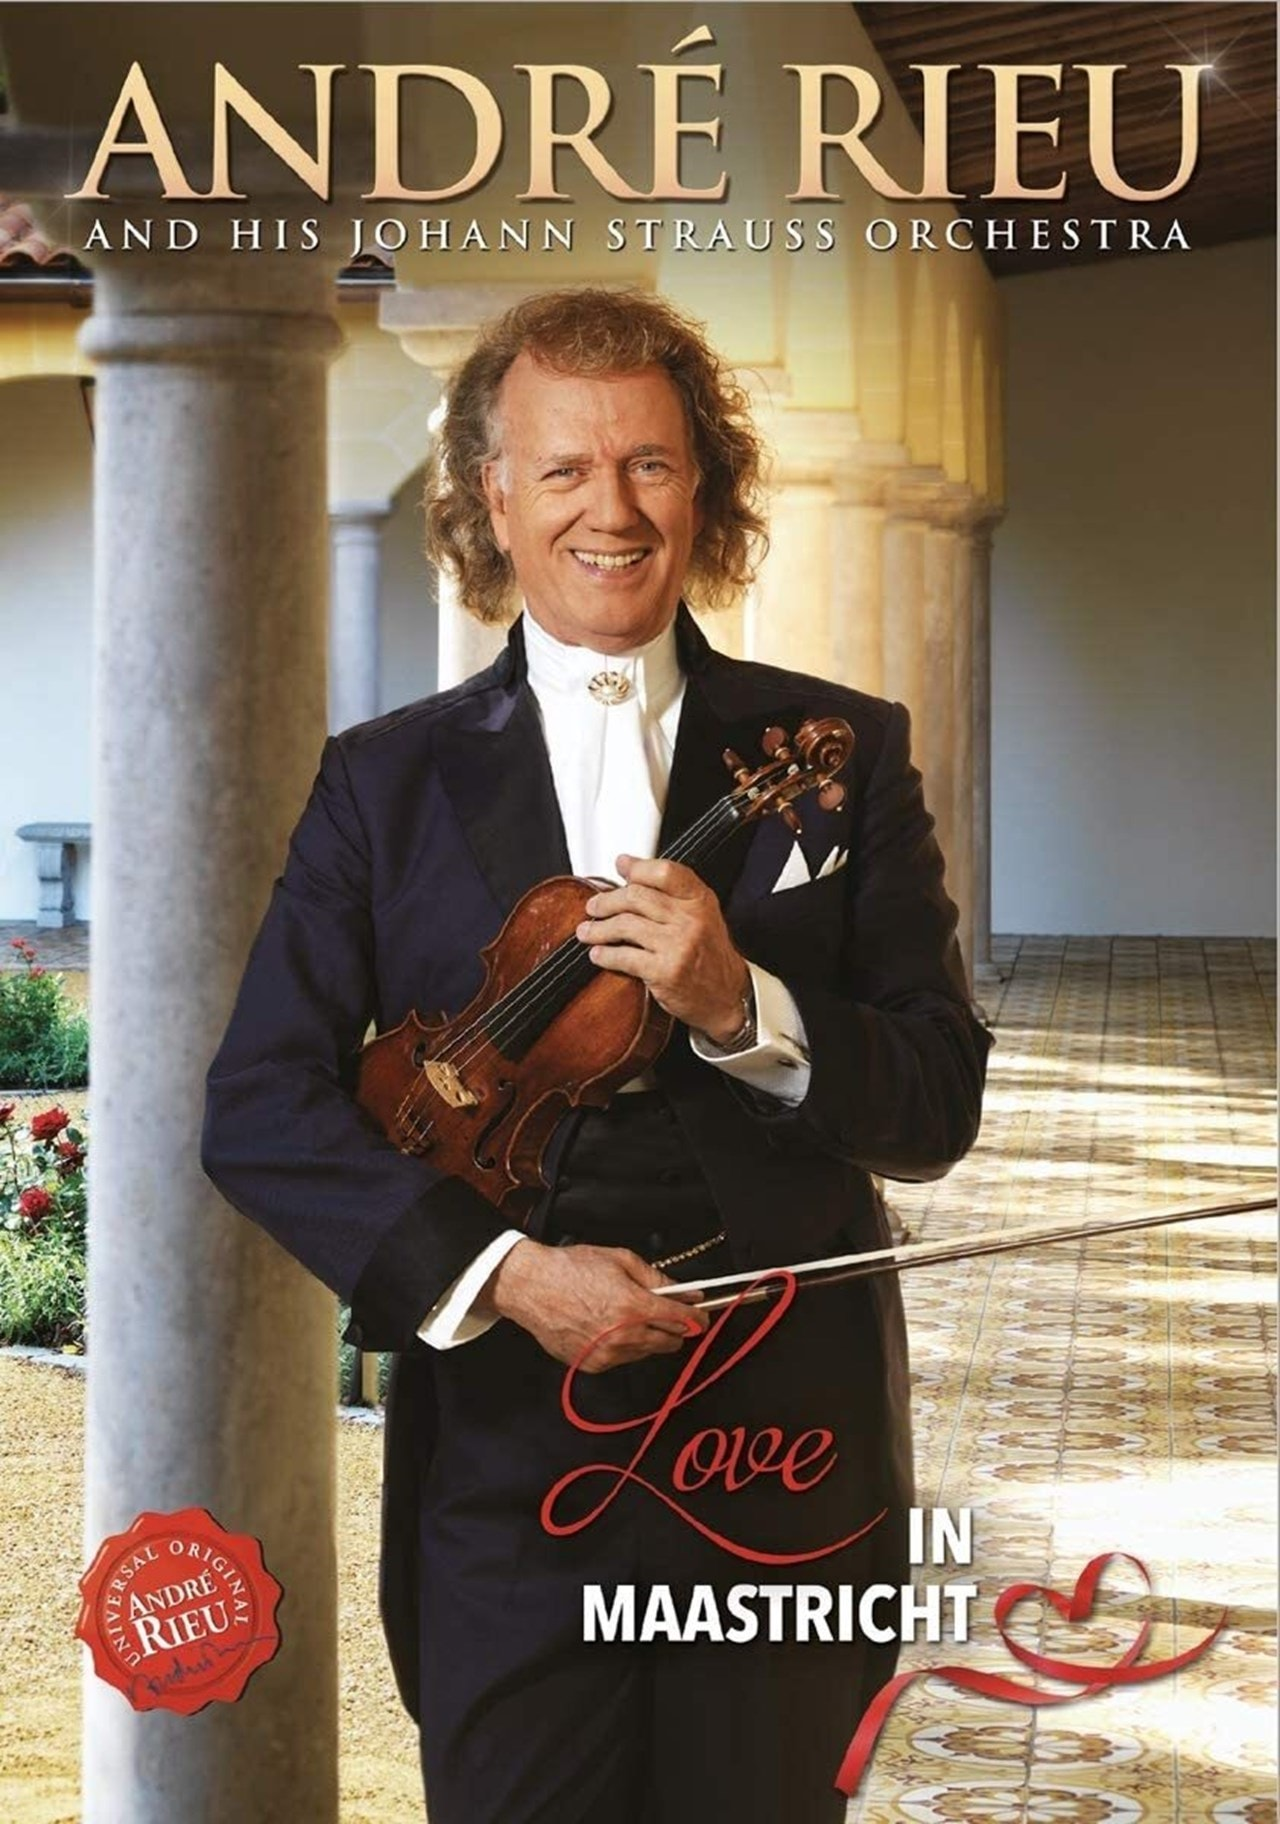 Andre Rieu and His Johann Strauss Orchestra: Love in Maastricht - 1